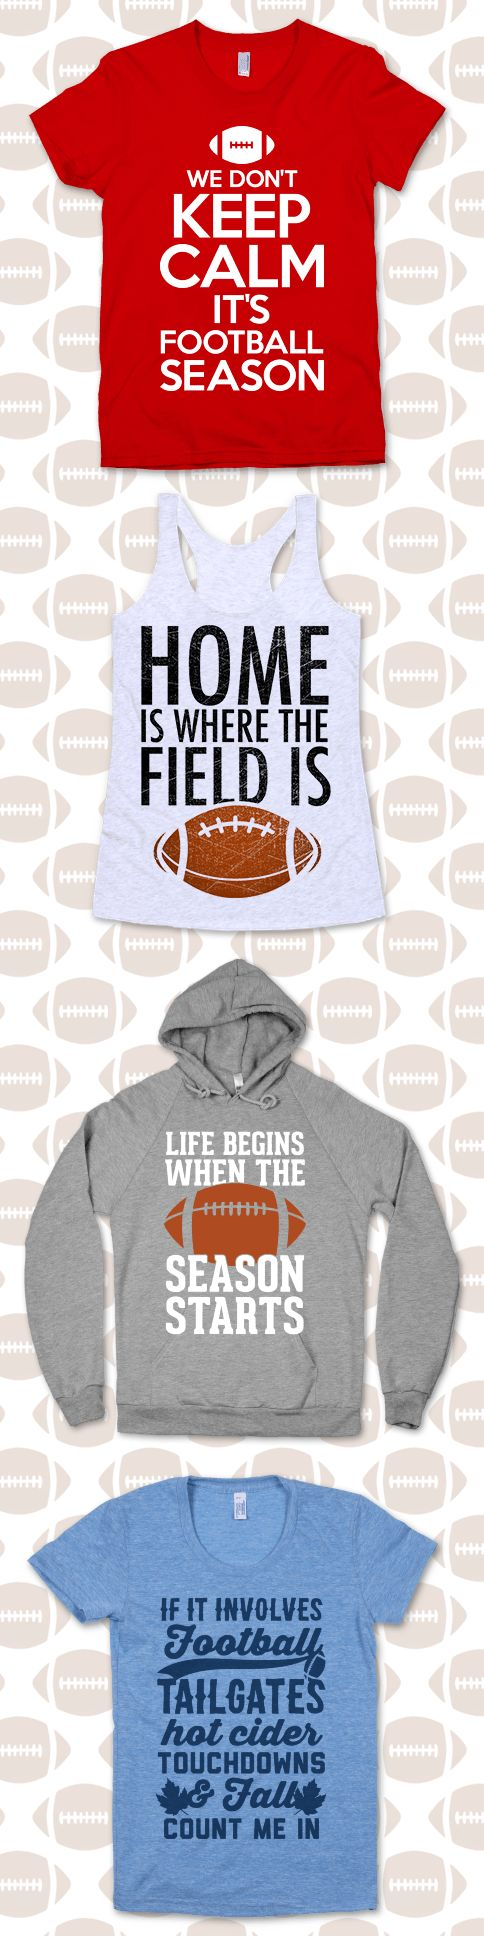 Fall is almost here, and it's time for the greatest sport to grace the season, football. Get ready for some fall season football with these fall football pun designs.